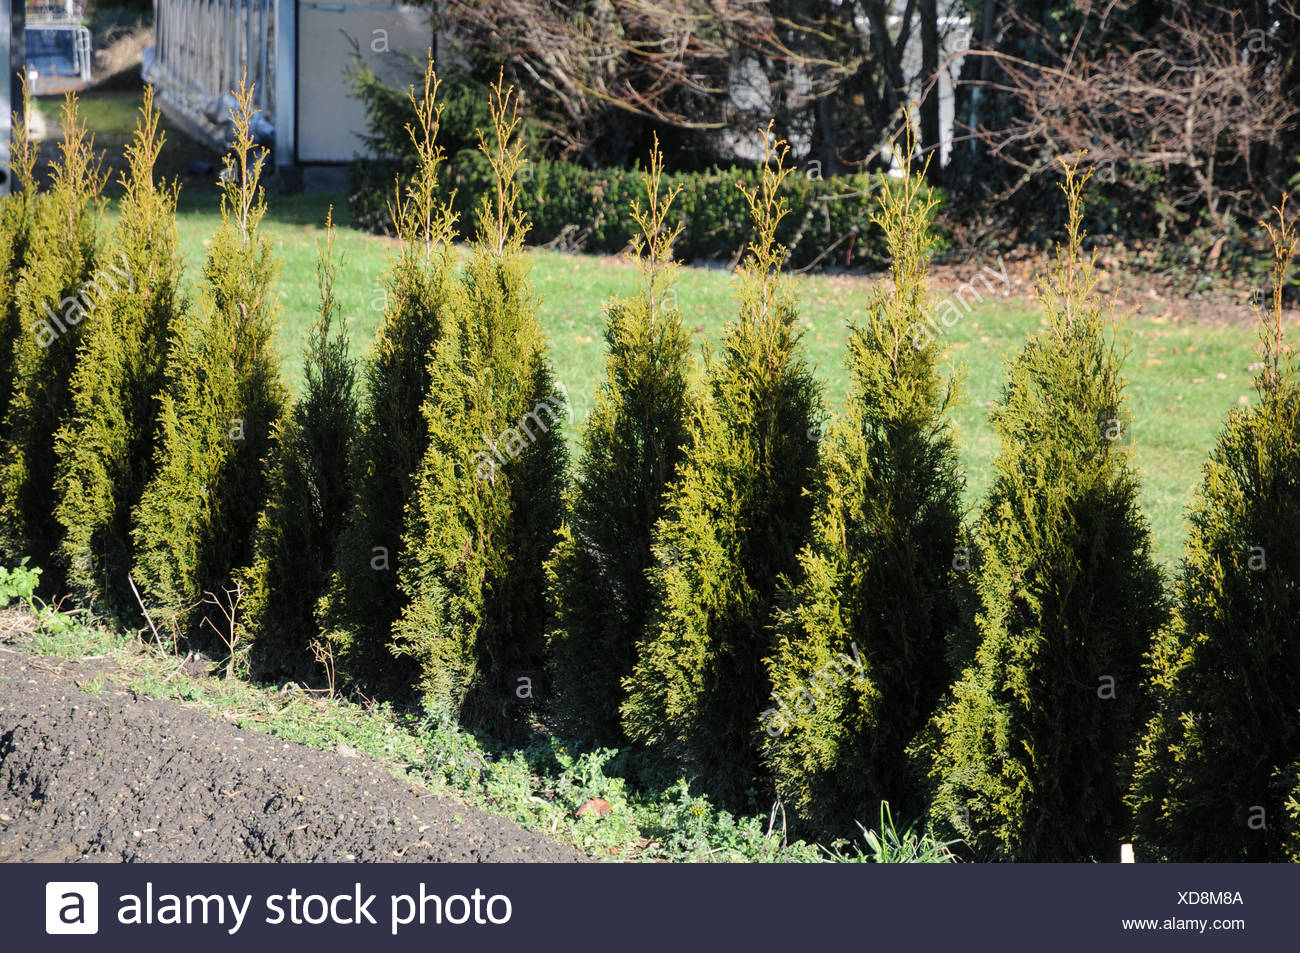 thuja occidentalis tree stockfotos thuja occidentalis tree bilder alamy. Black Bedroom Furniture Sets. Home Design Ideas